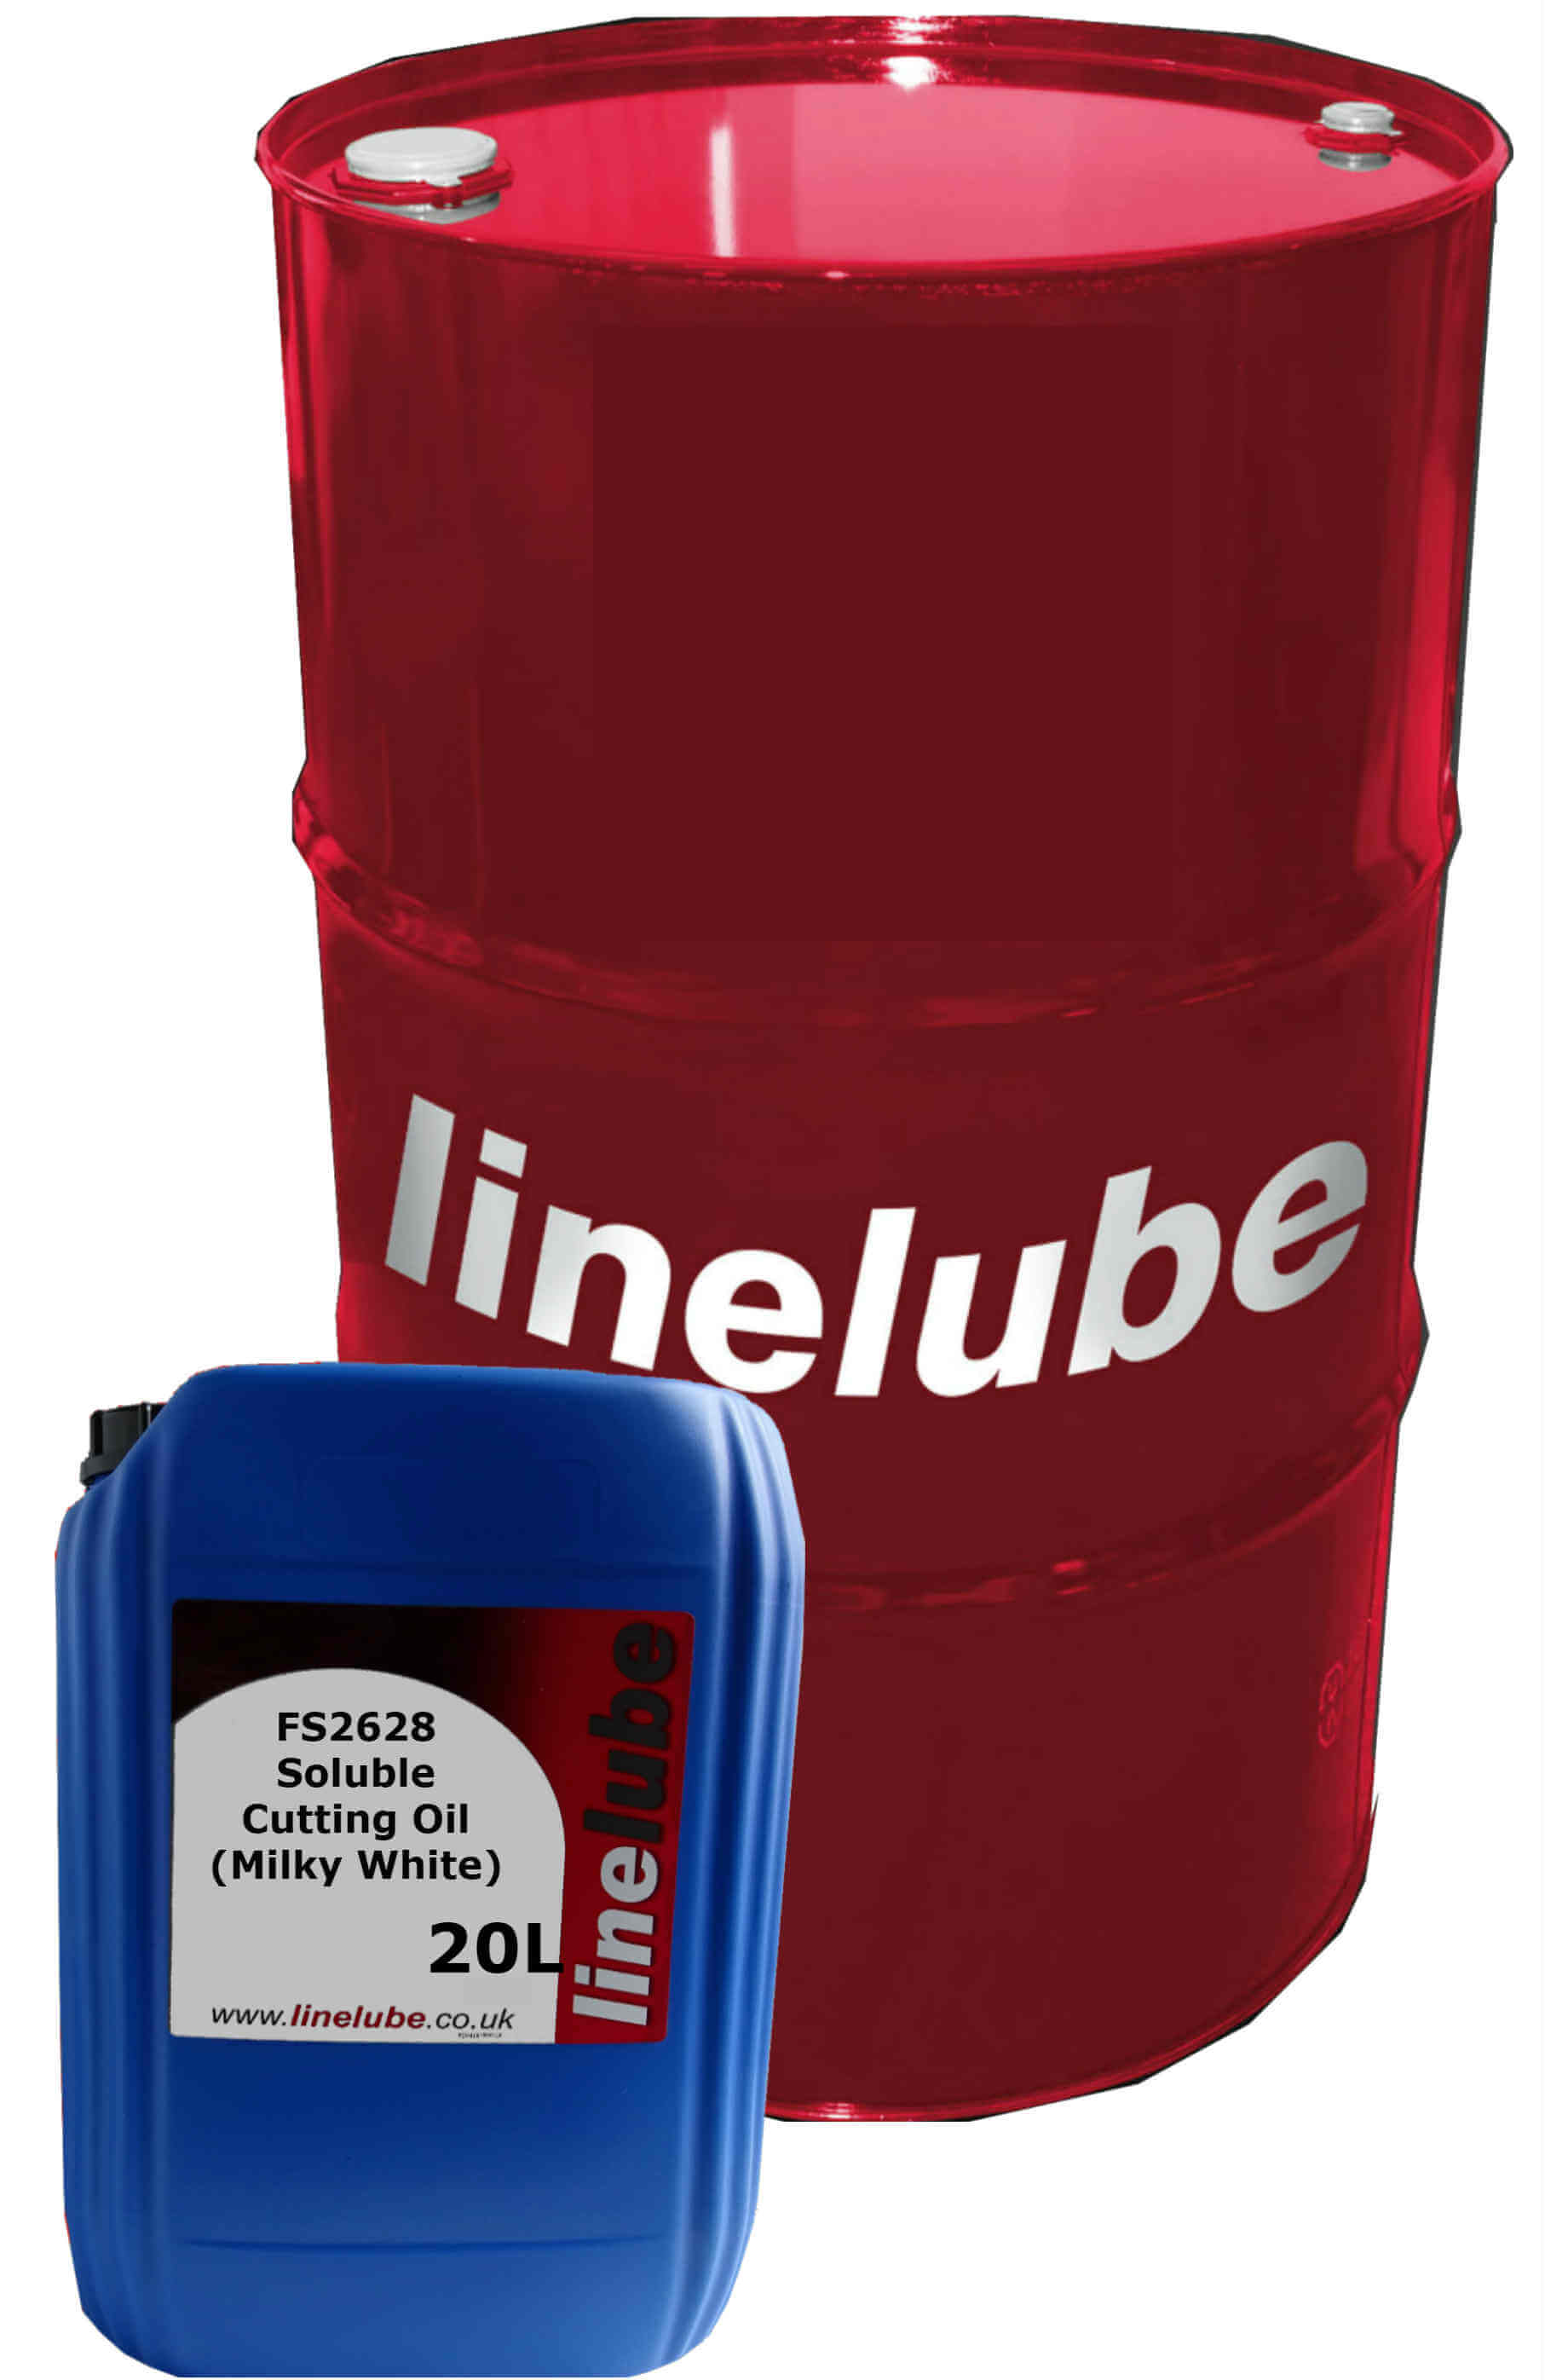 Linelube FS2628 Soluble Cutting Oil (Milky White)